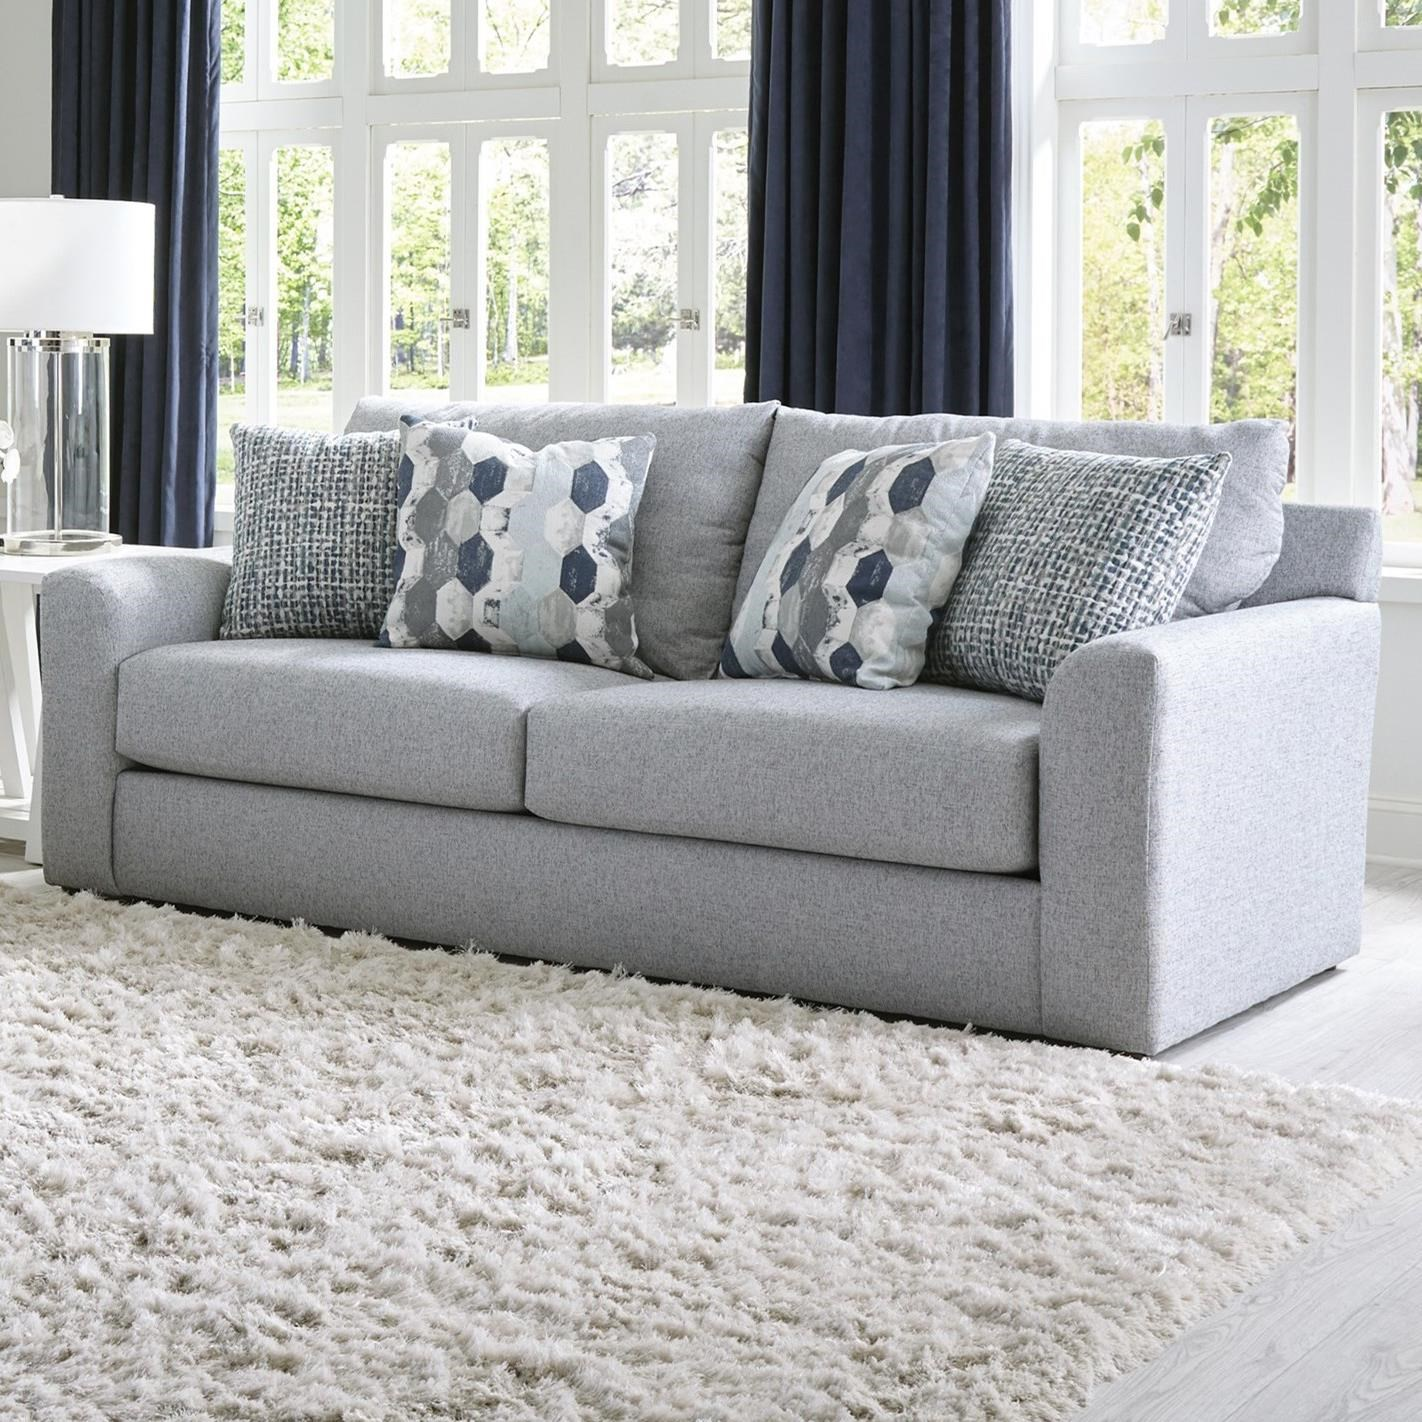 Hooten Sofa by Jackson Furniture at EFO Furniture Outlet